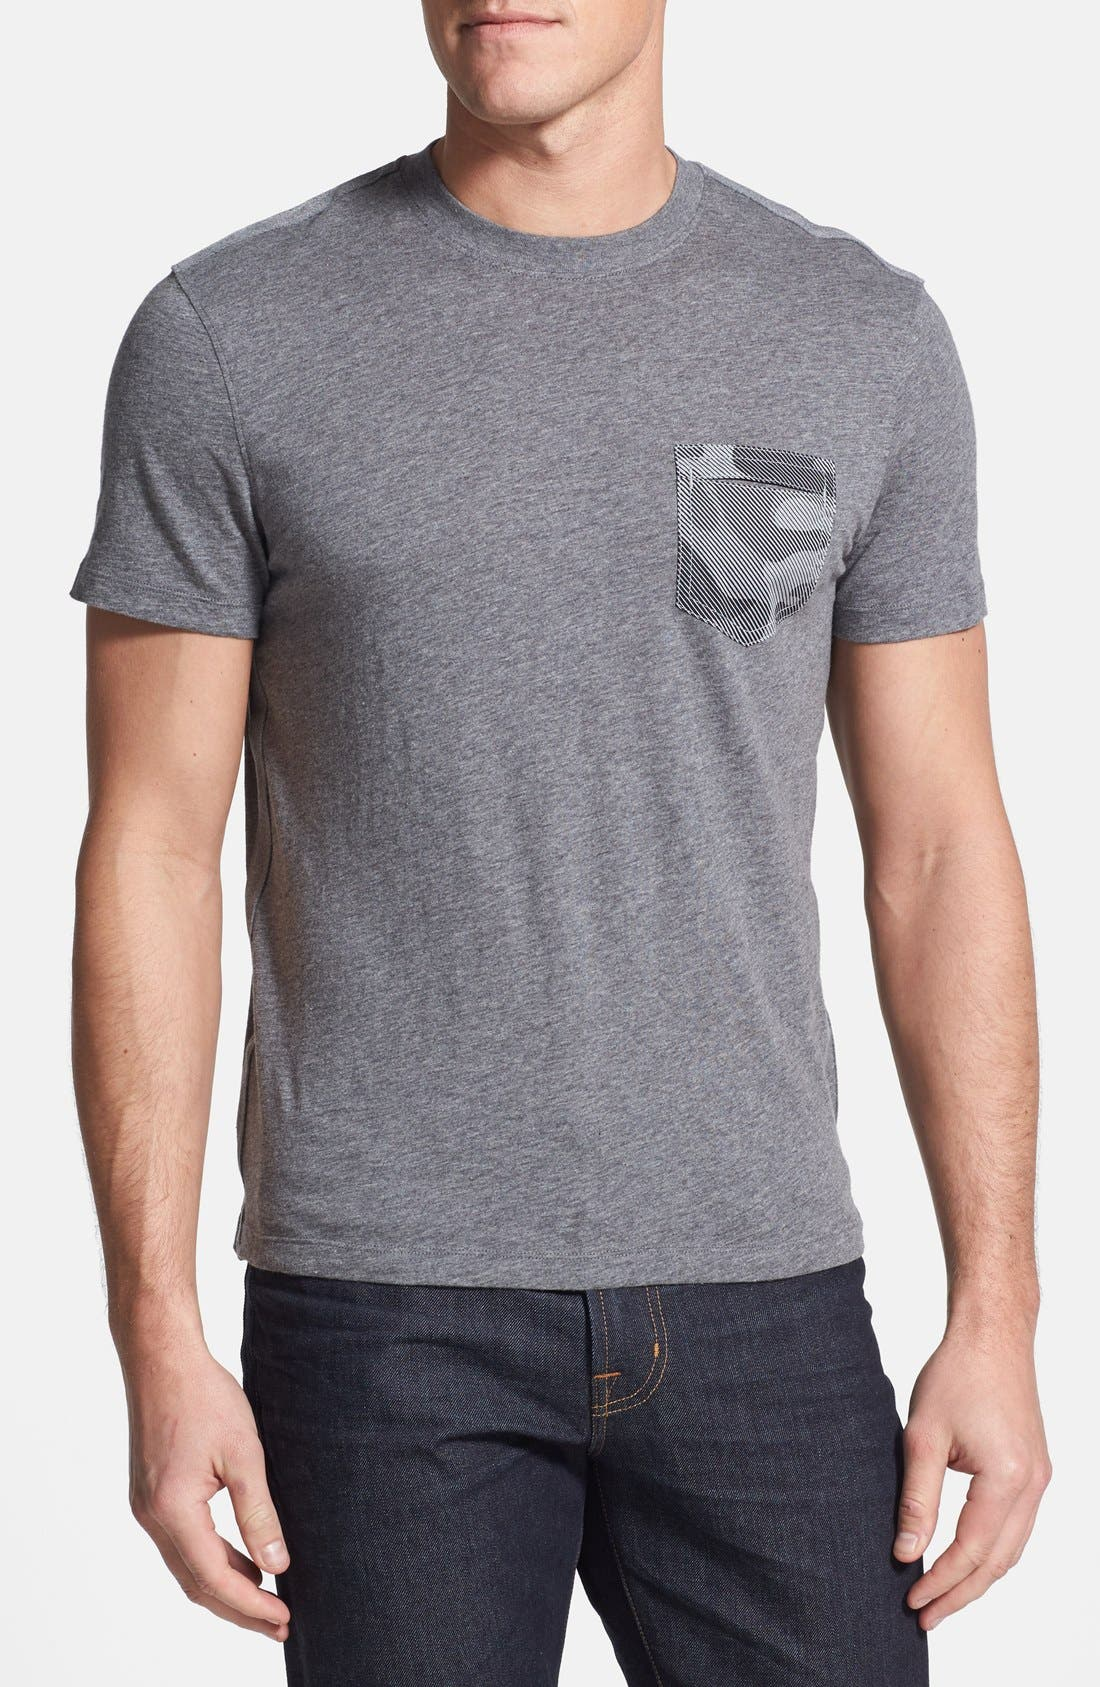 Alternate Image 1 Selected - Michael Kors Camo Pocket Slub T-Shirt